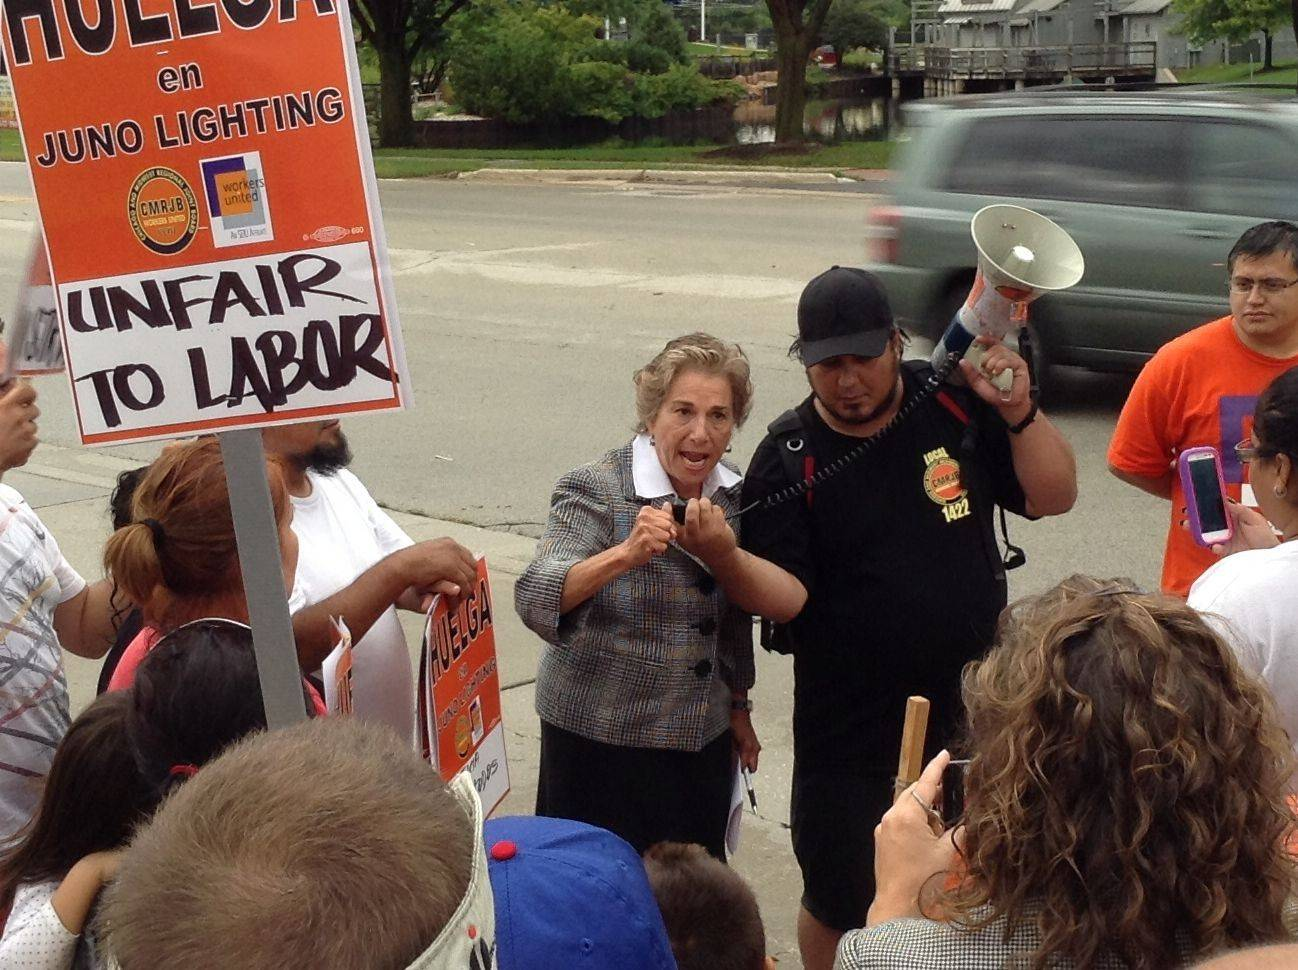 Schakowsky backs striking workers at Juno Lighting Group in Des Plaines